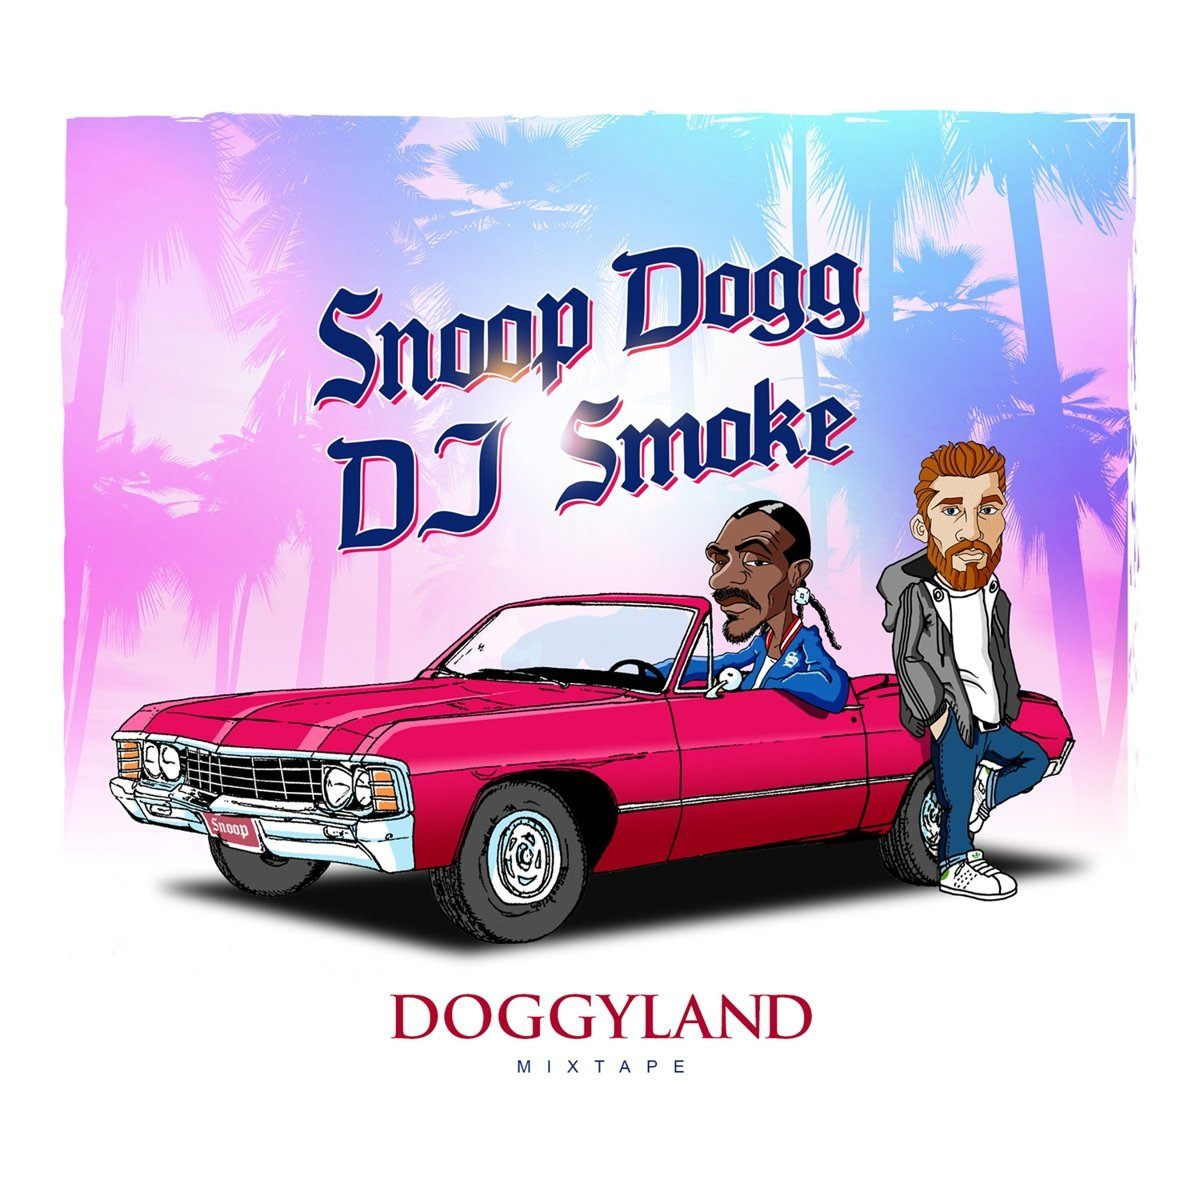 Doggyland-Mixtape - Snoop Dogg, DJ Smoke: Amazon de: Musik